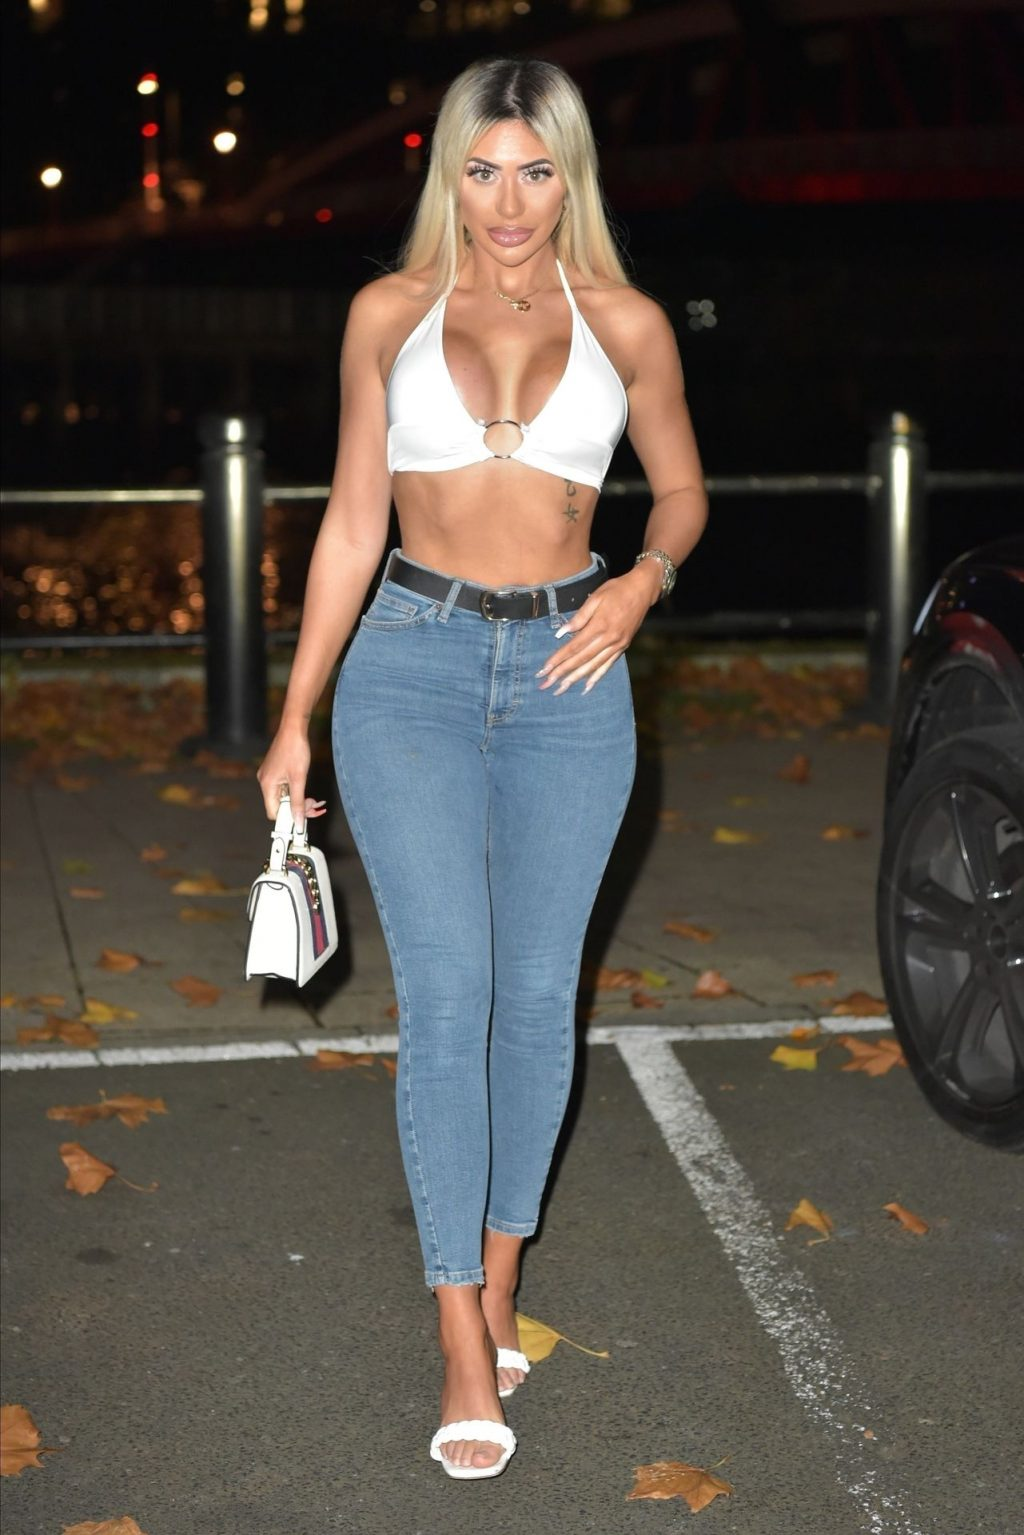 Chloe Ferry Hits the Toon as She Enjoys a Night Out with a Friend (34 Photos)